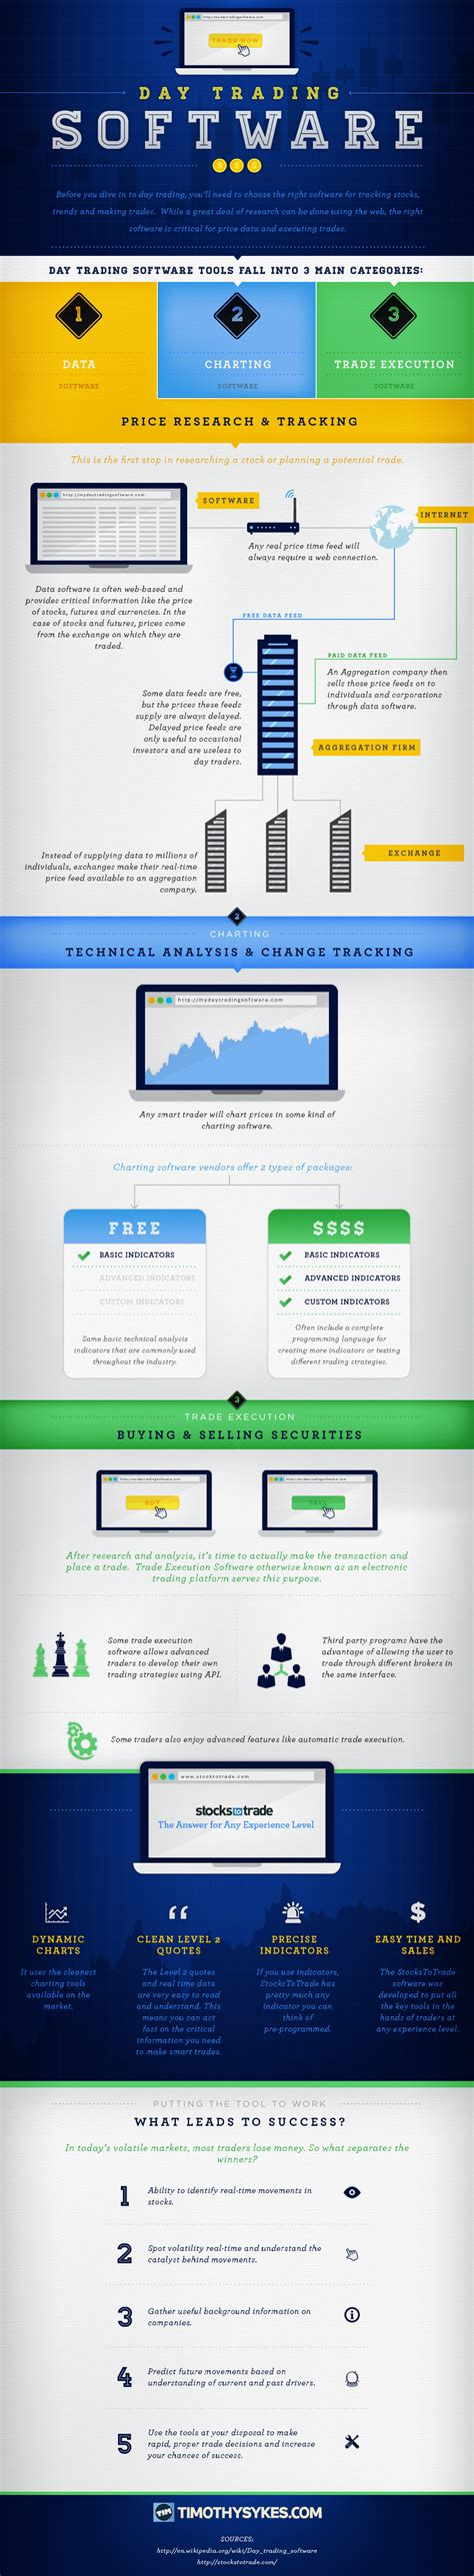 day trading software day trading software infographic timothy sykes